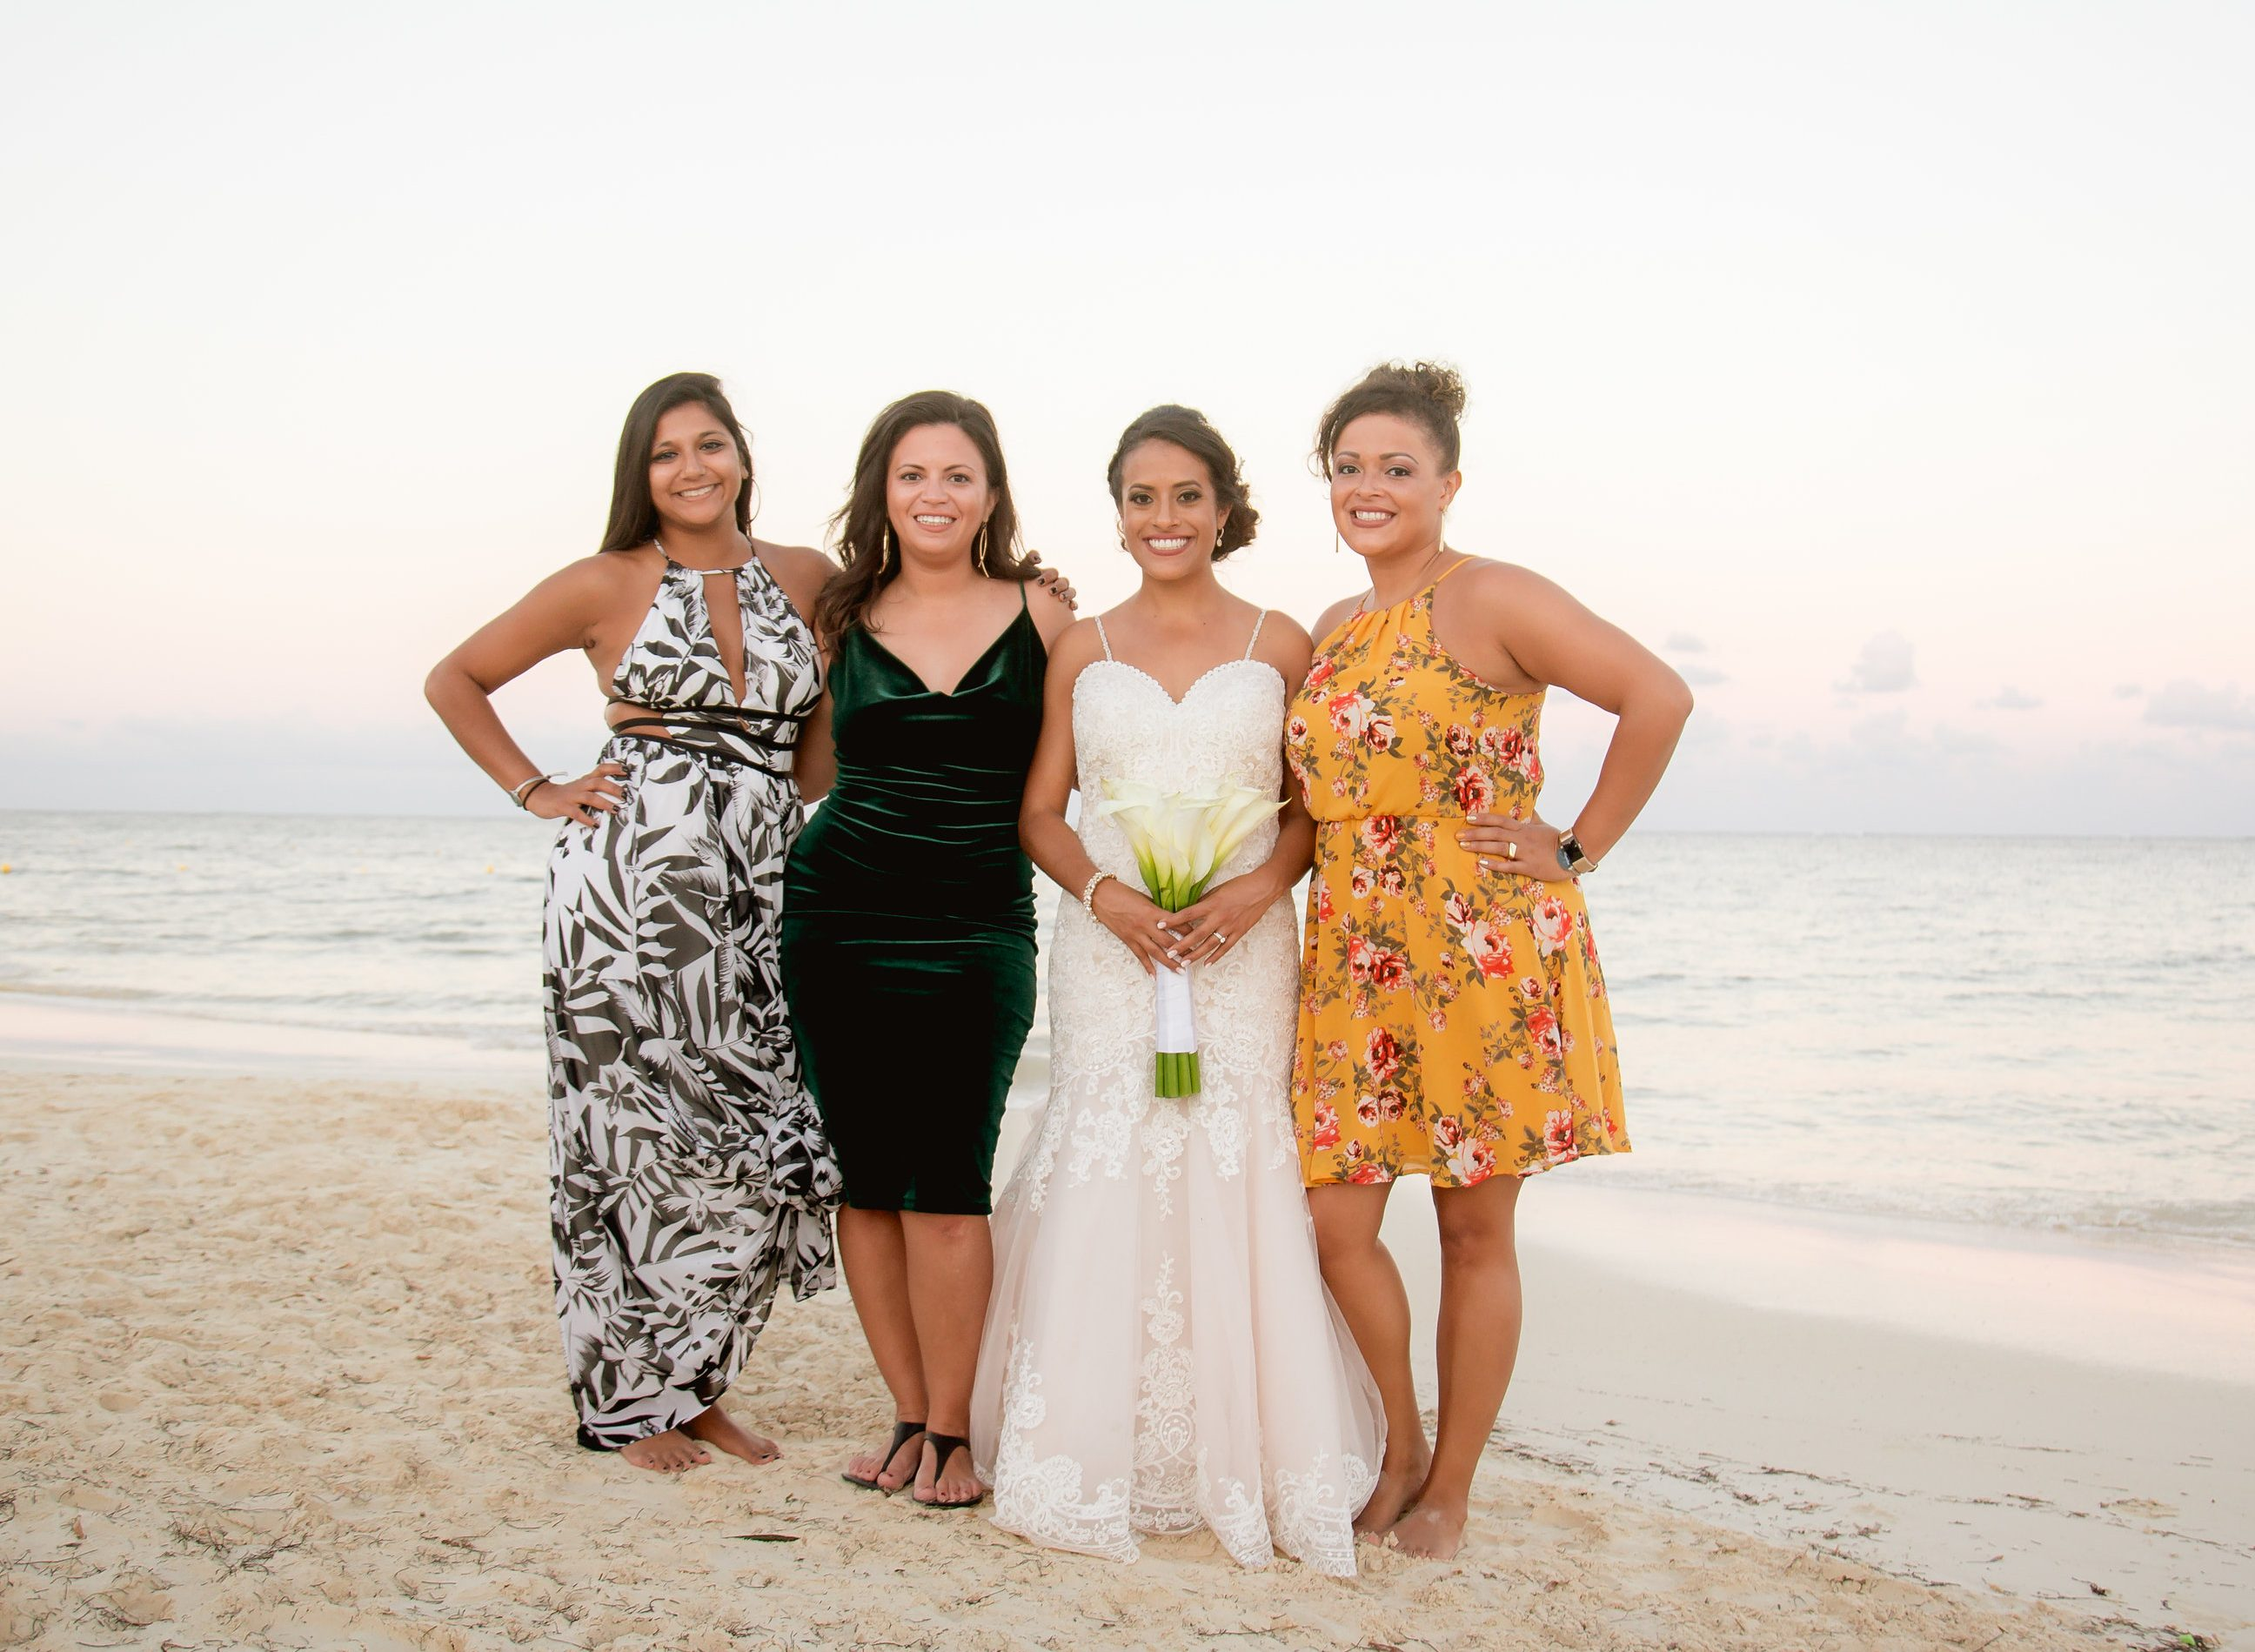 bbaca83668c2 destination-wedding-guest-beach-attire - Weddings By Funjet